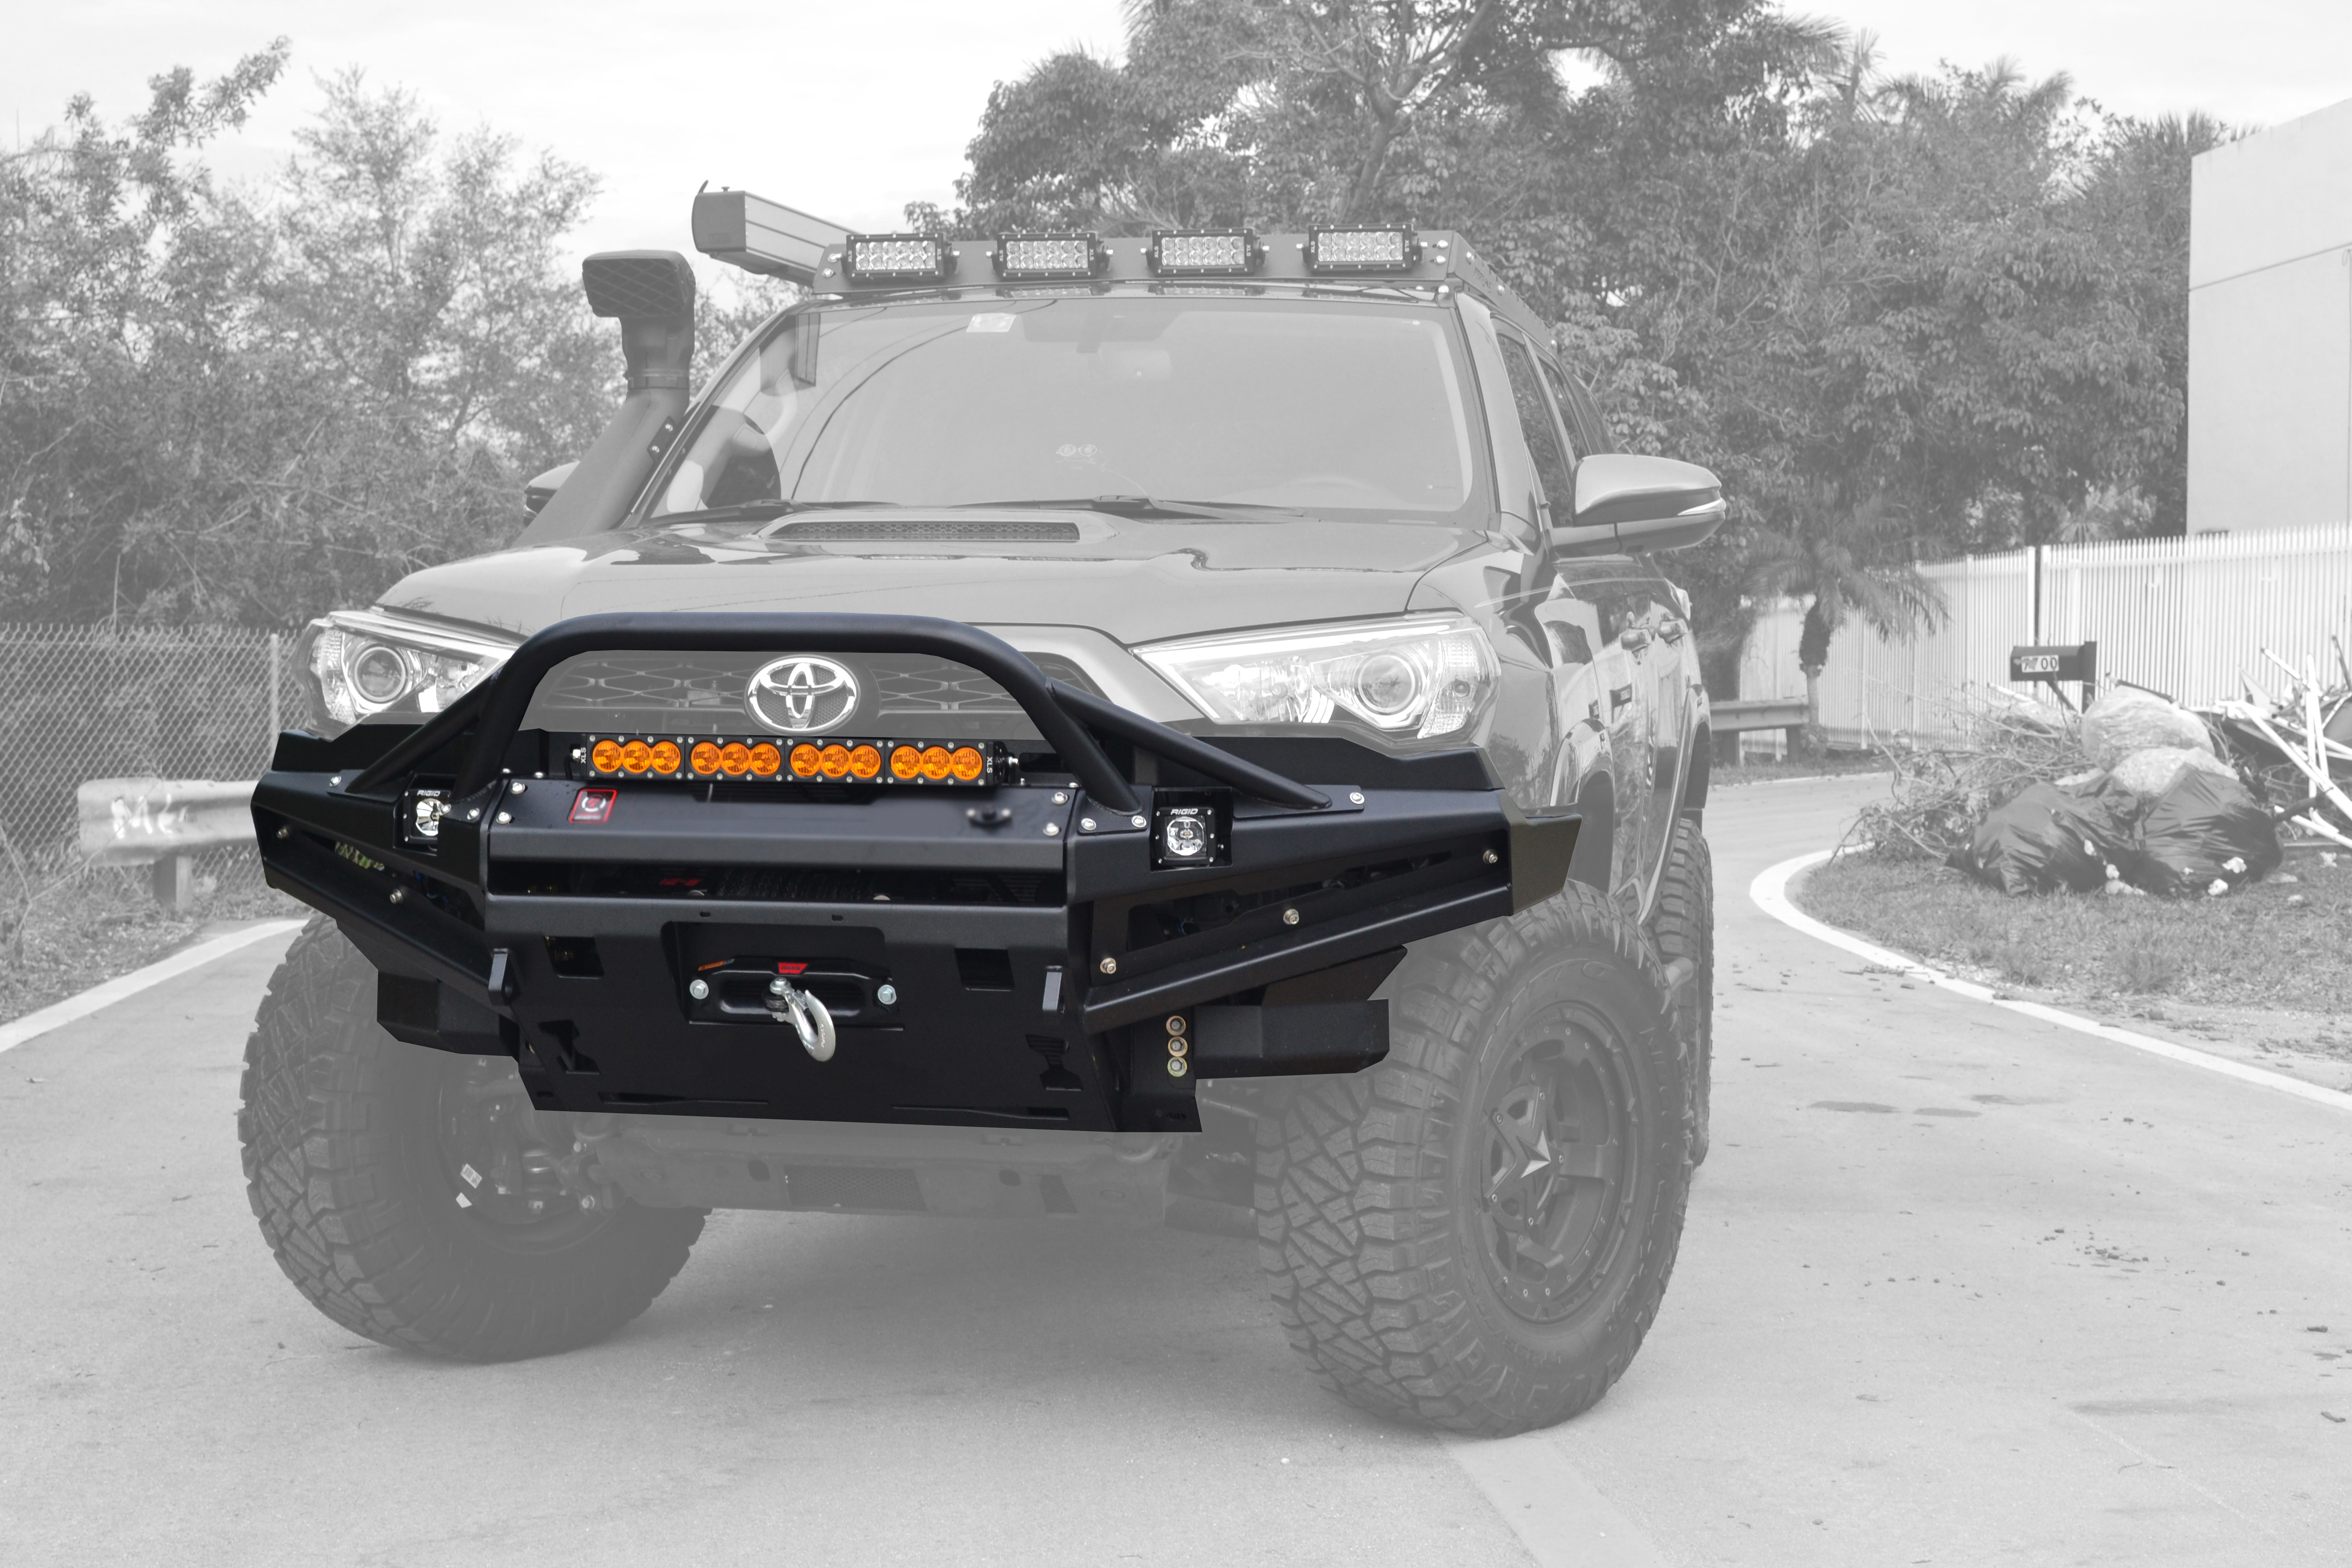 Best Year 4runner >> Toyota 4Runner 5th Gen R1 Front Bumper | Proline 4wd Equipment | Miami Florida